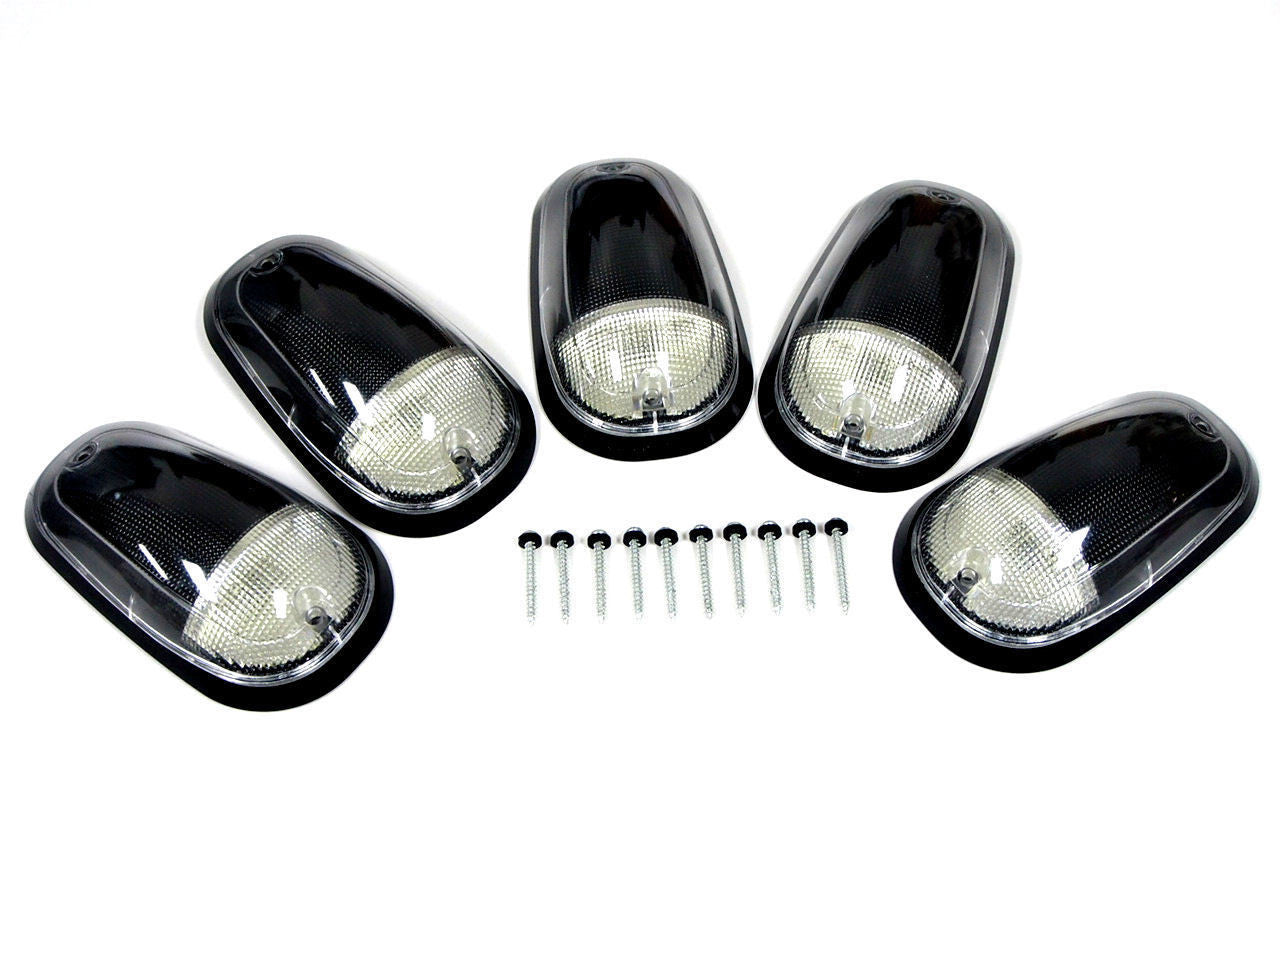 Lighting Vms Racing Dodge Cab Light Wiring Harness 03 16 Ram 2500 3500 Amber Led Clear Roof Lights 5 Piece Set